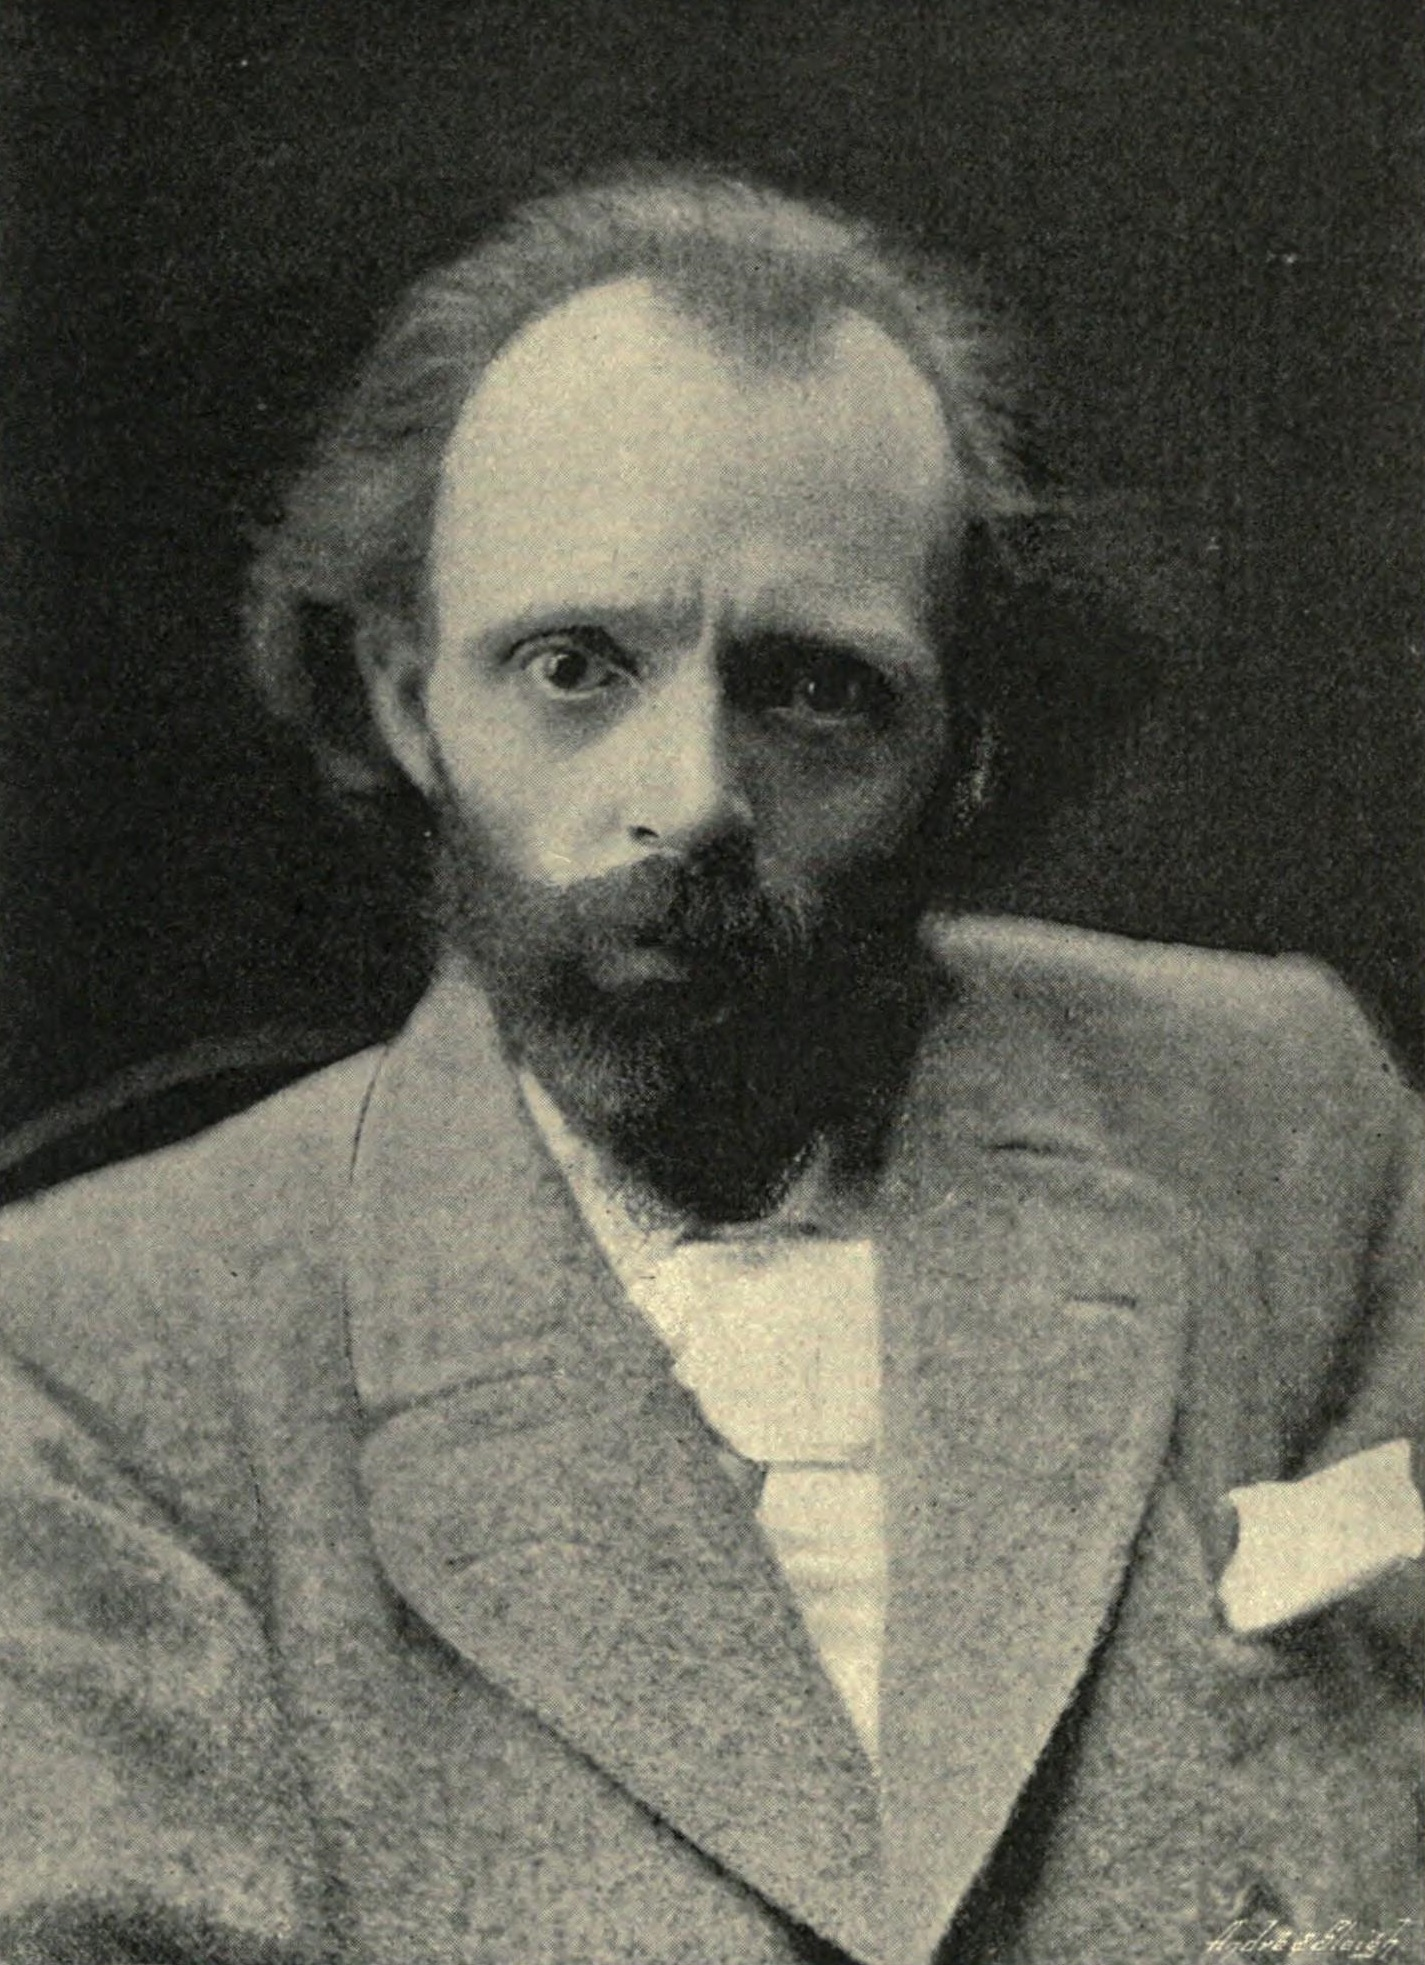 Photograph of Hall Caine by H. S. Mendelssohn